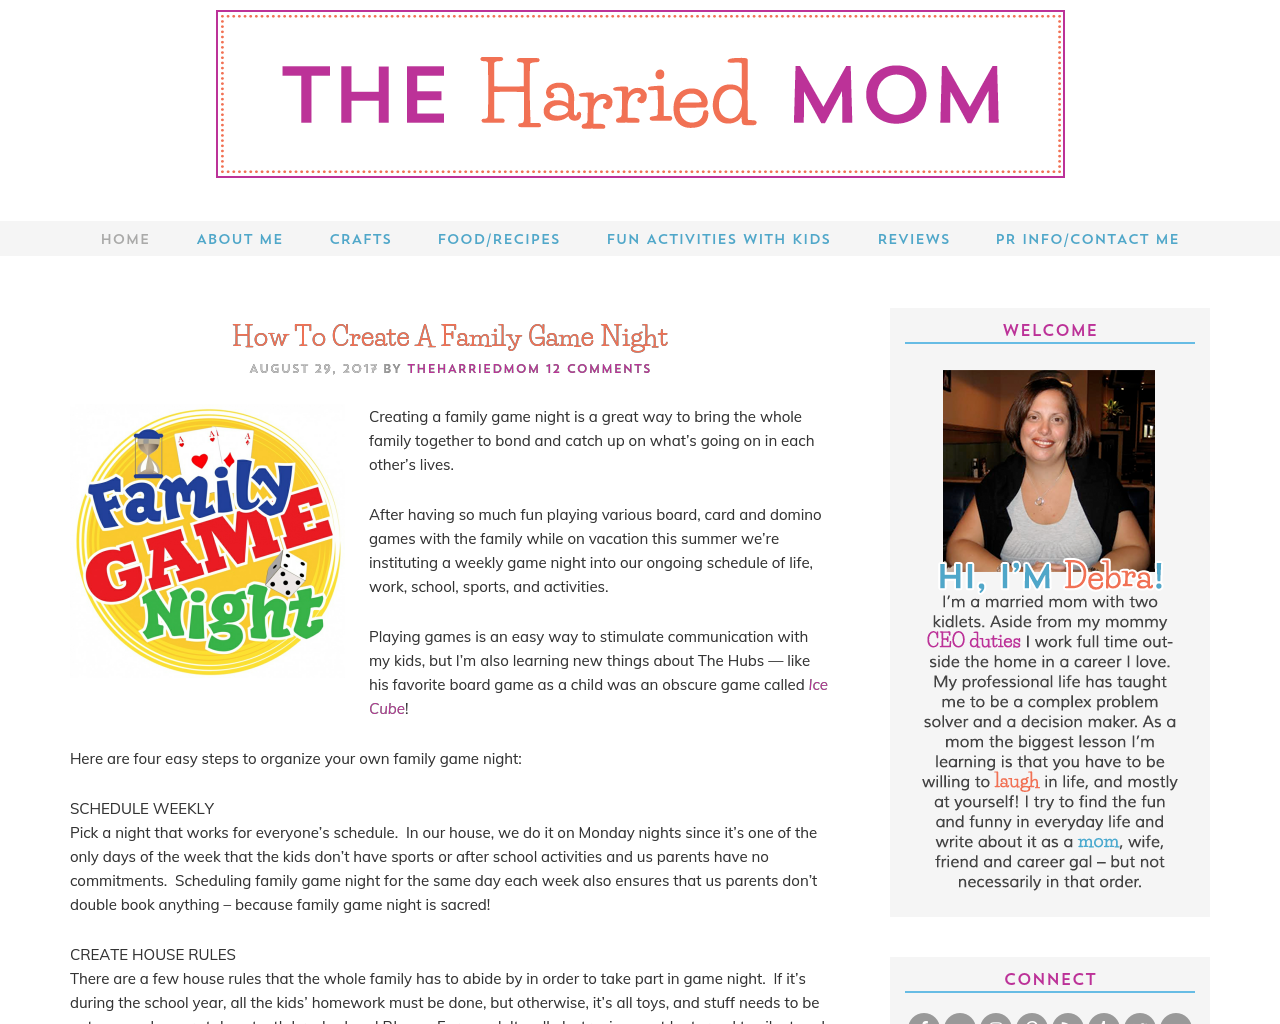 The-Harried-Mom-Advertising-Reviews-Pricing